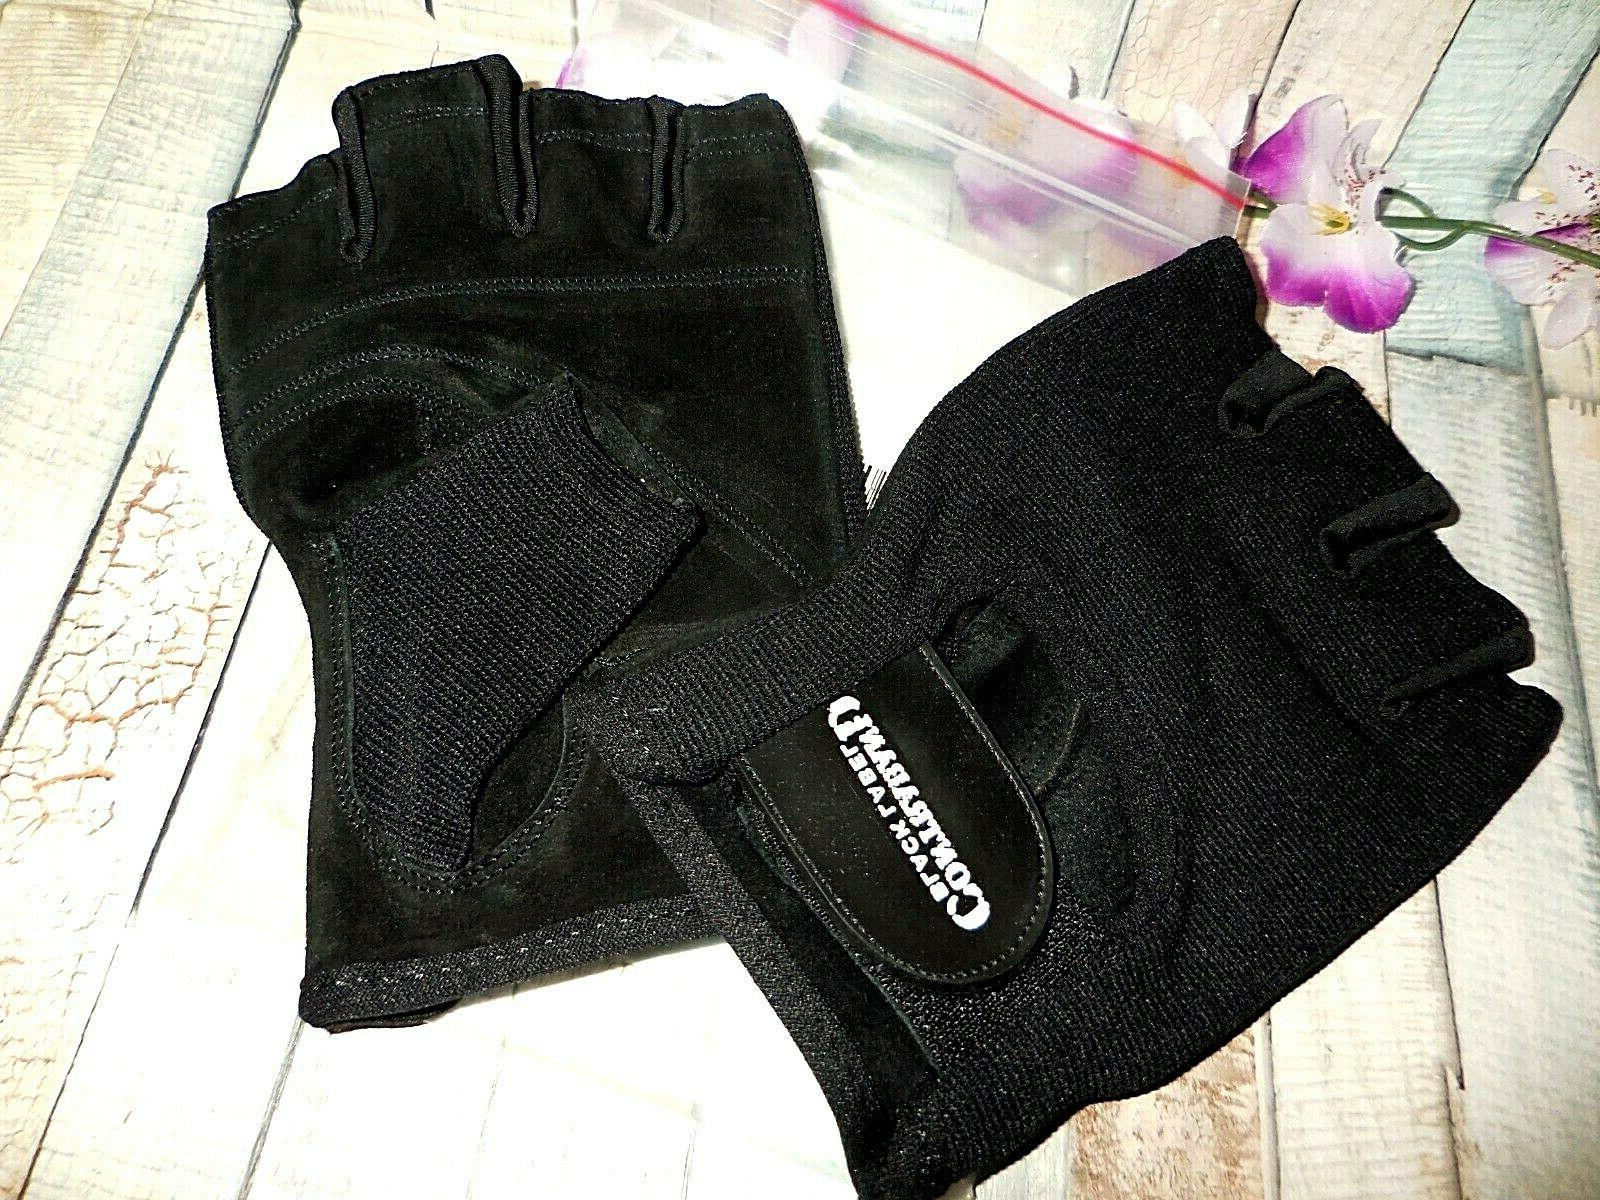 CONTRABAND BLACK LABEL WEIGHT GLOVES LARGE